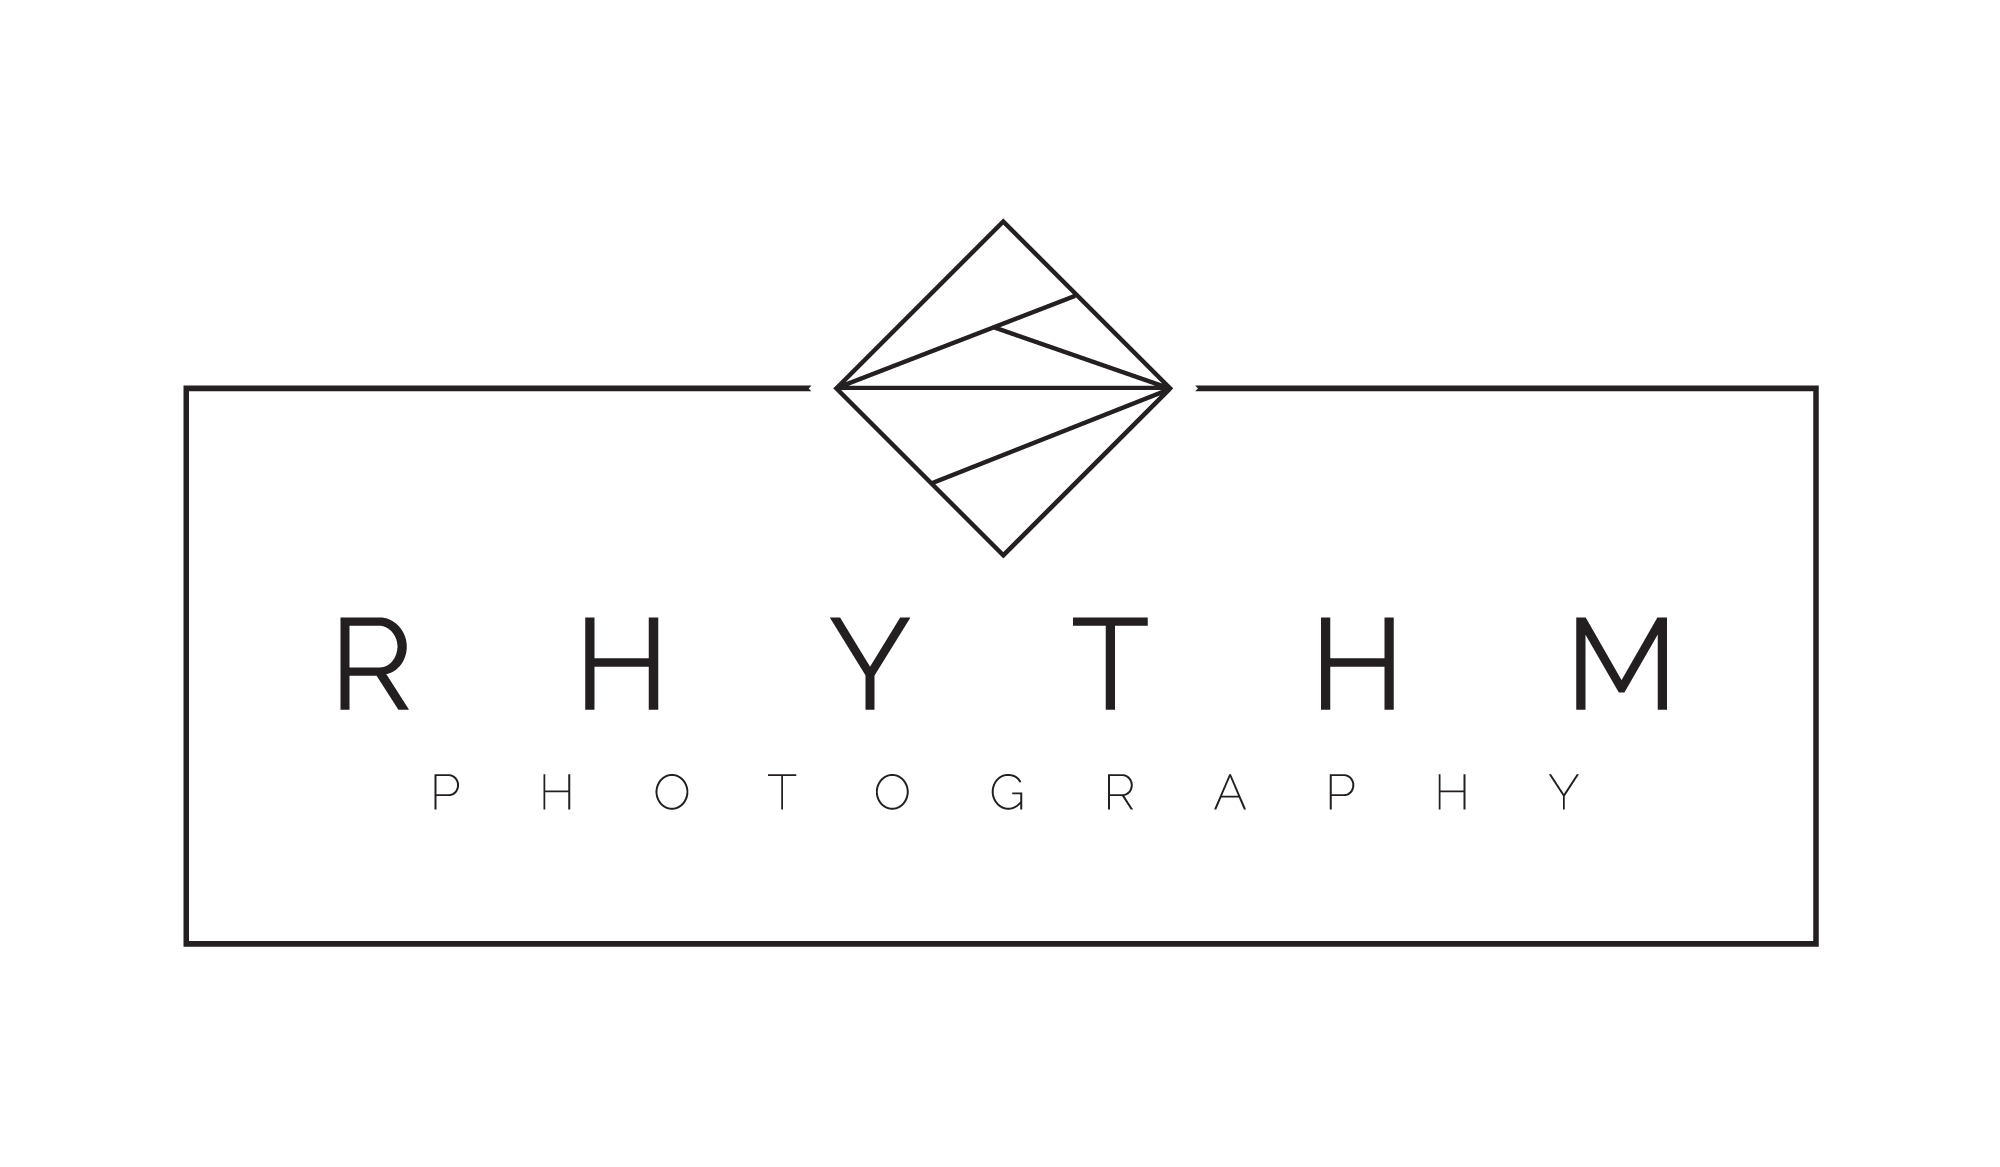 Rhythm Photography